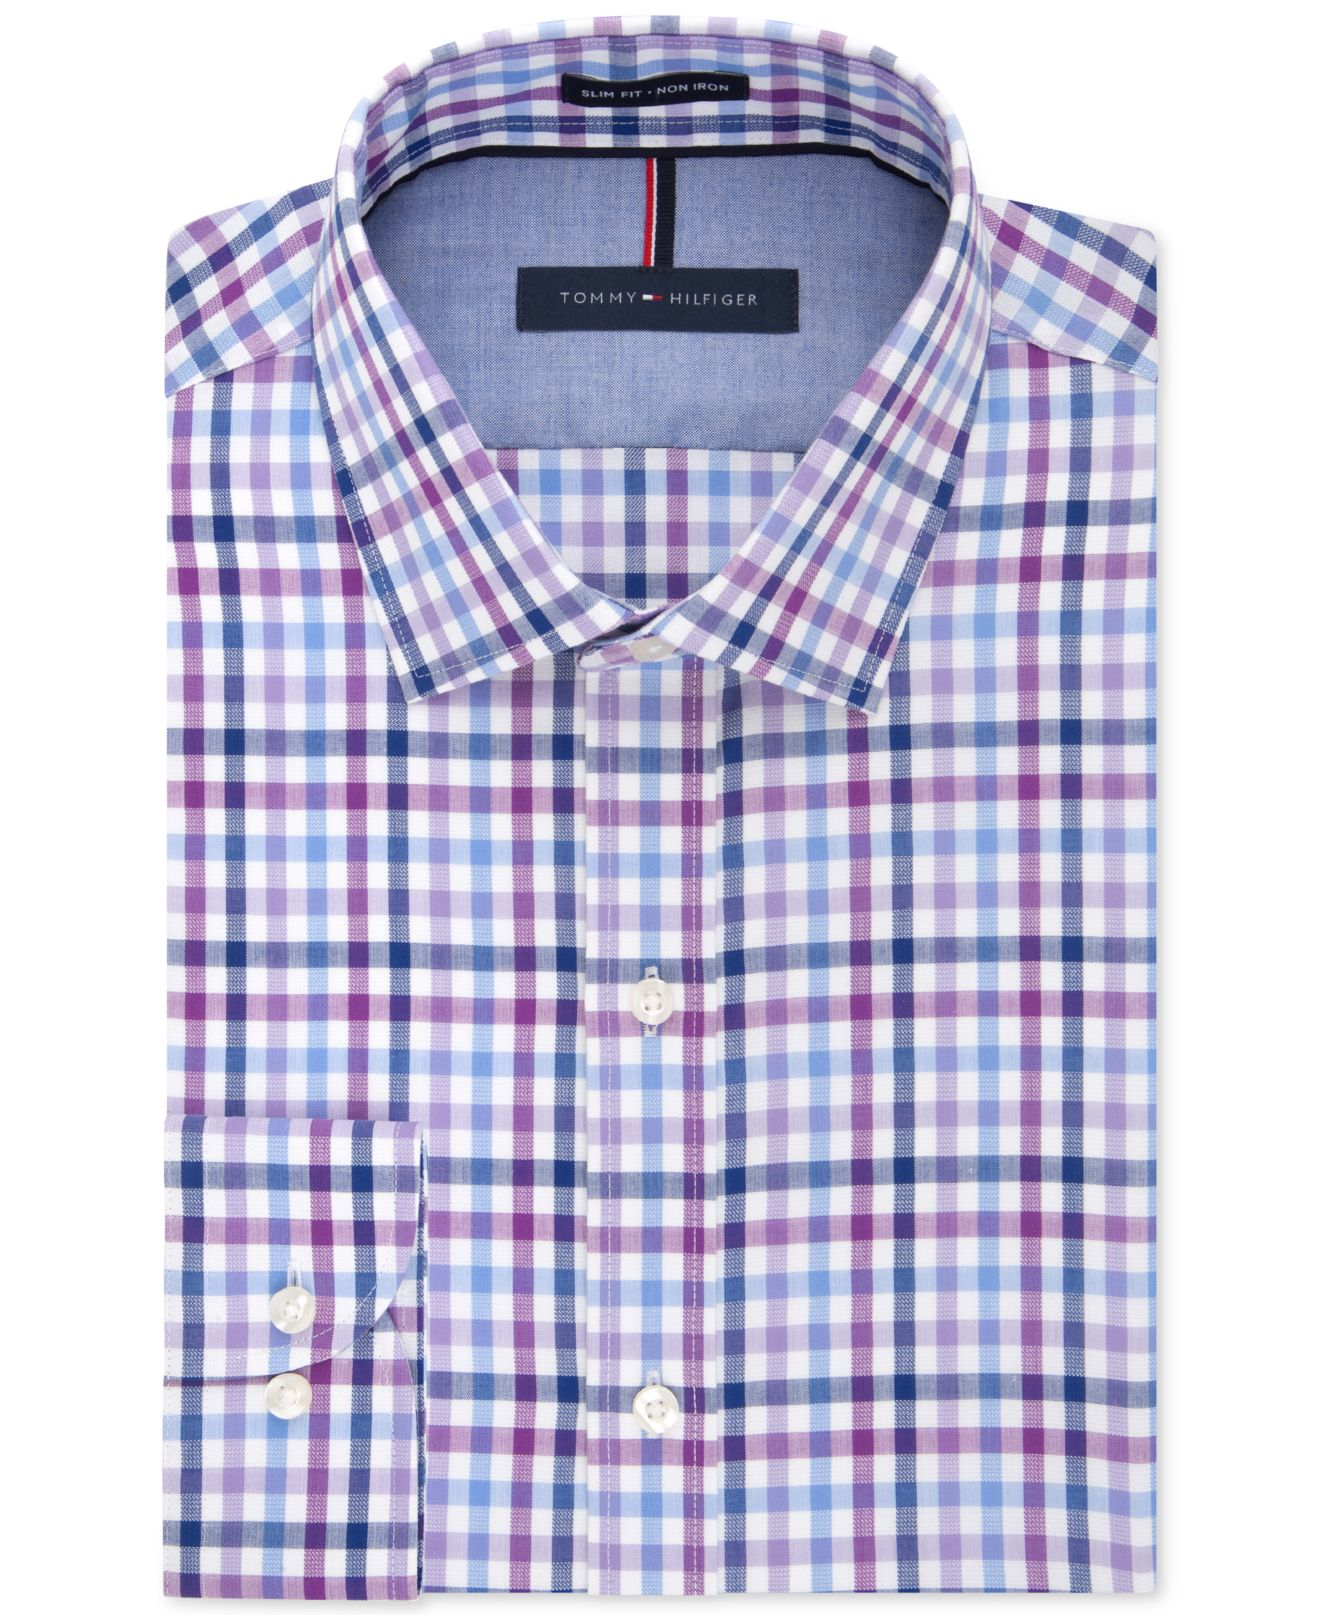 Lyst Tommy Hilfiger Slim Fit Non Iron Blue Violet